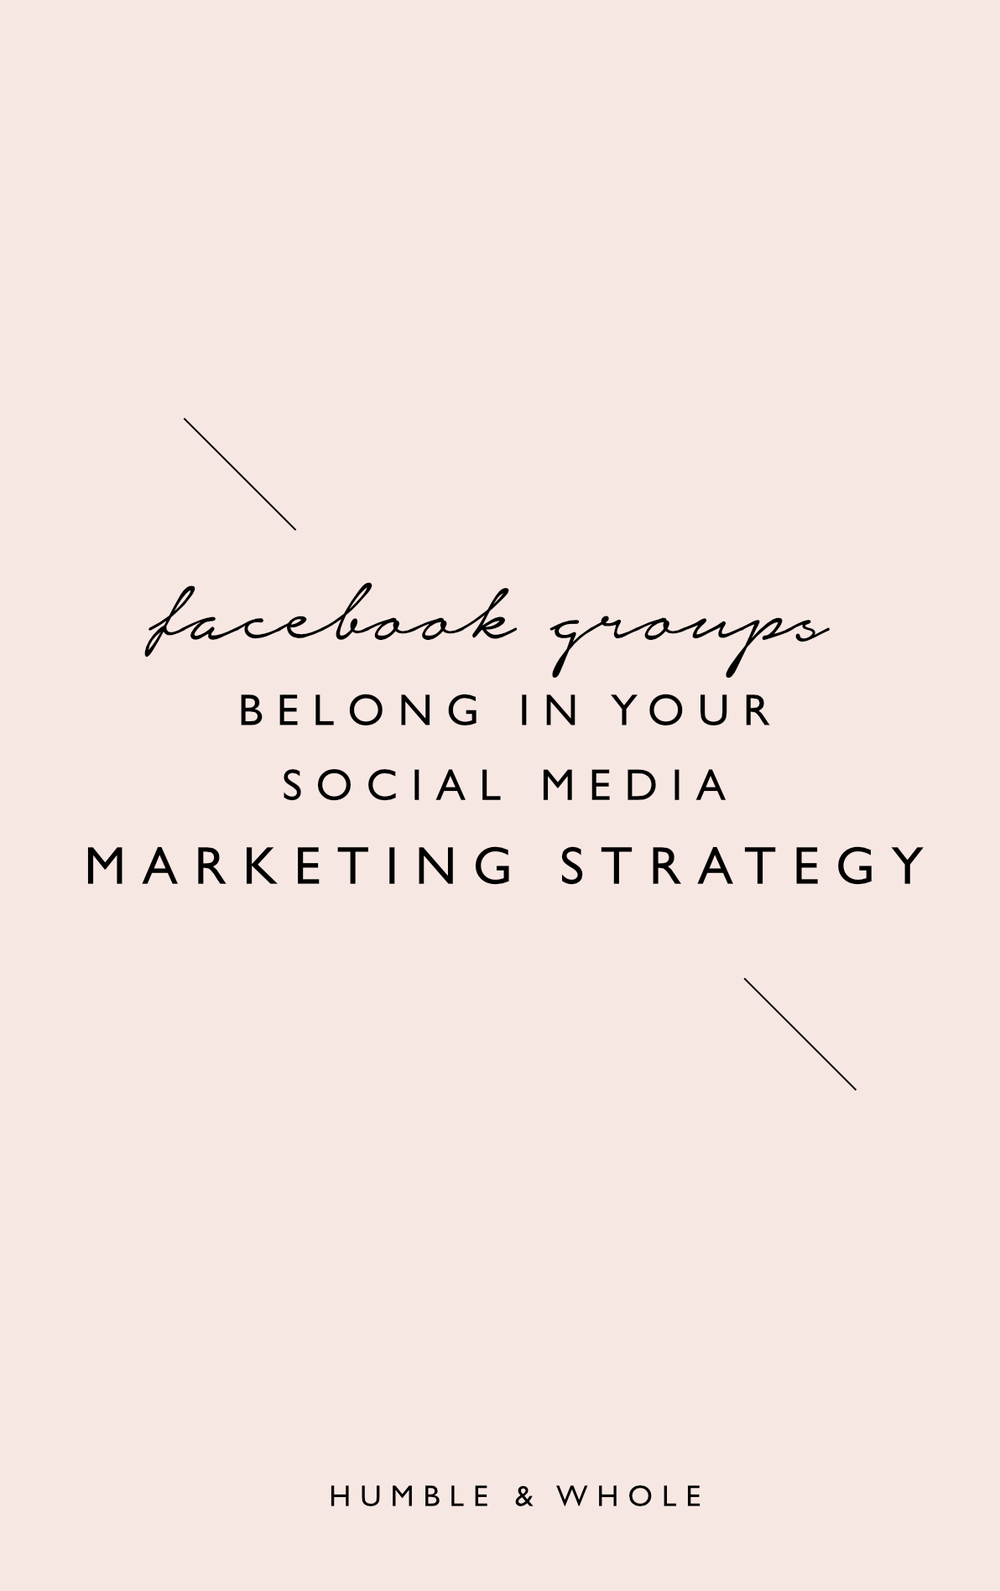 Benefits of Facebook Groups